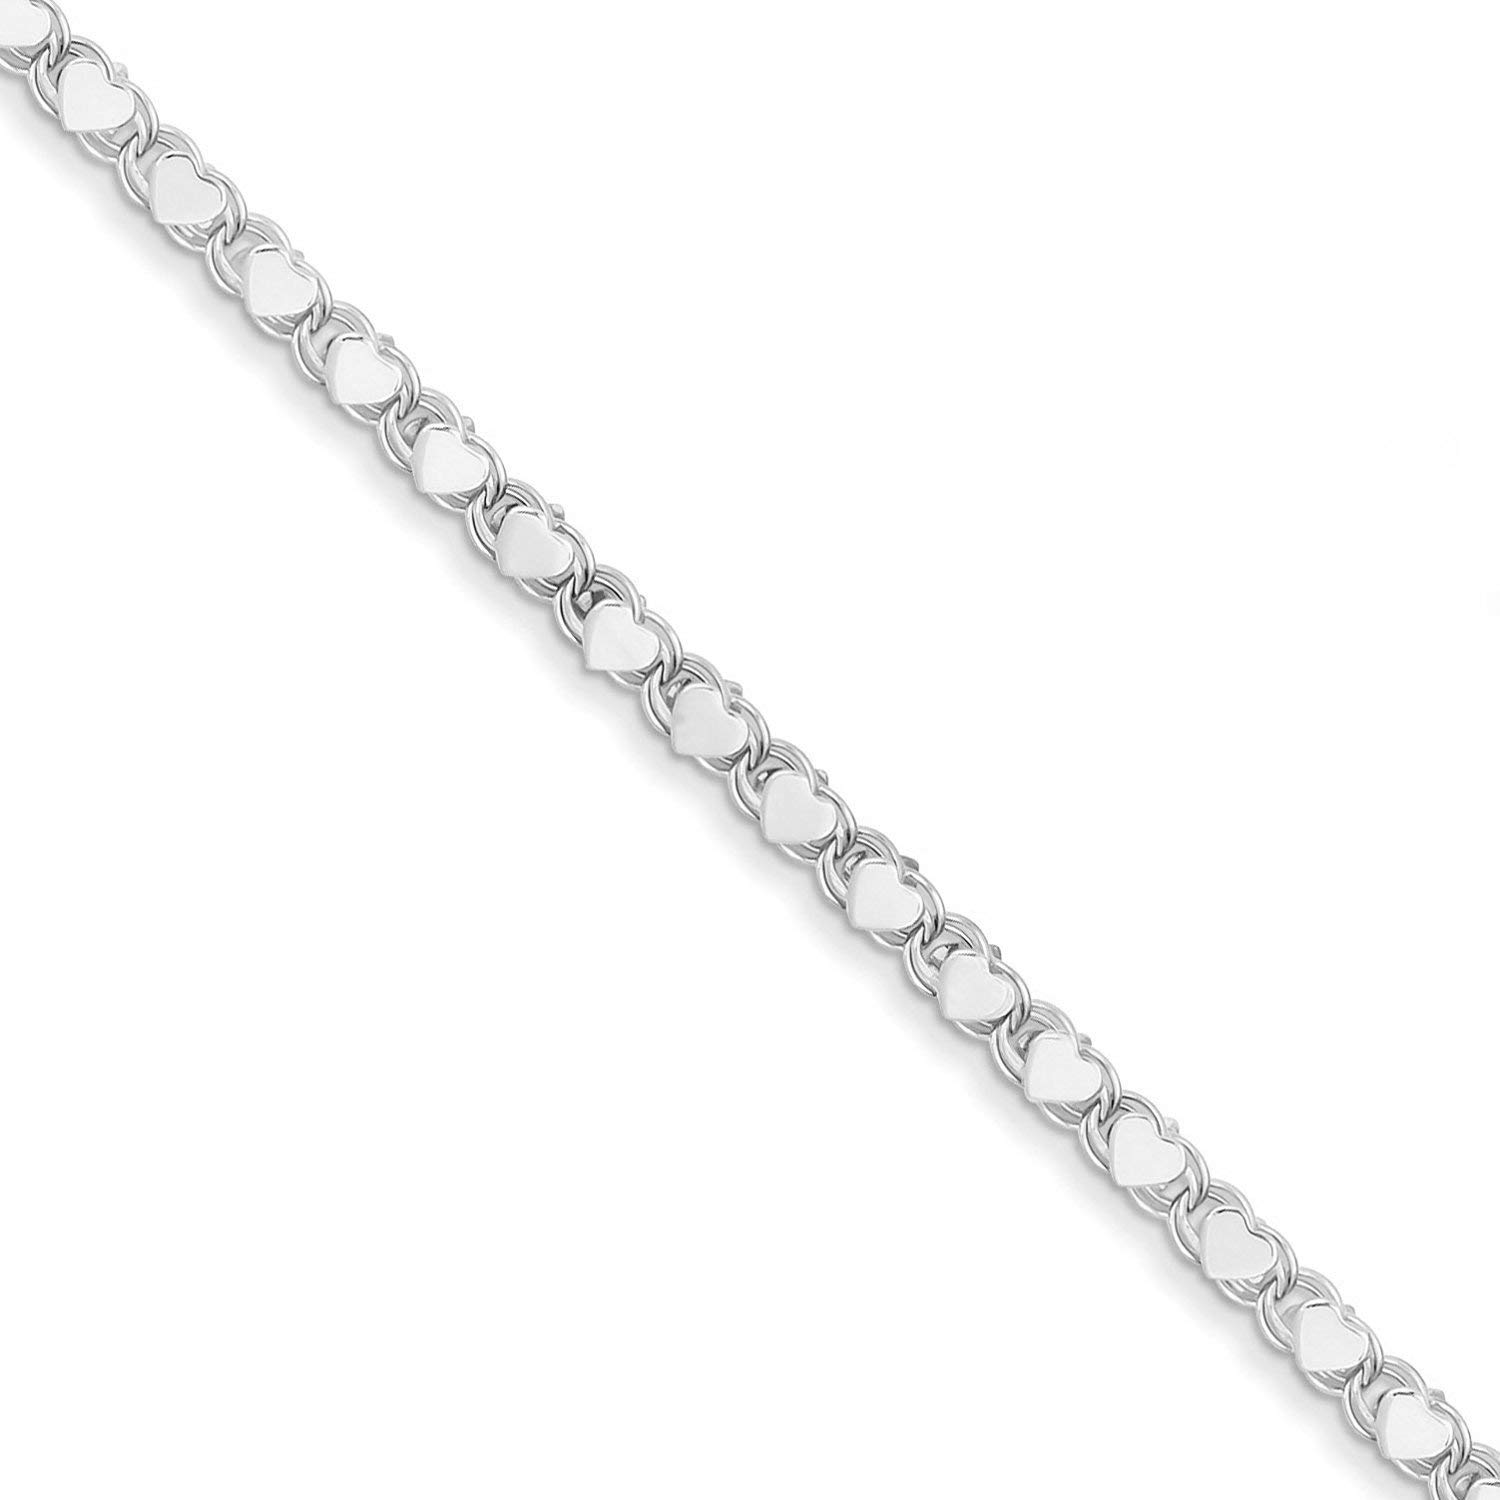 14K Yellow or White Gold 2.9mm Shiny Heart Chain Necklace or Bracelet Bangle or Anklet for Pendants and Charms with Lobster-Claw Clasp 5.5 7, 10, 16, or 18 inch